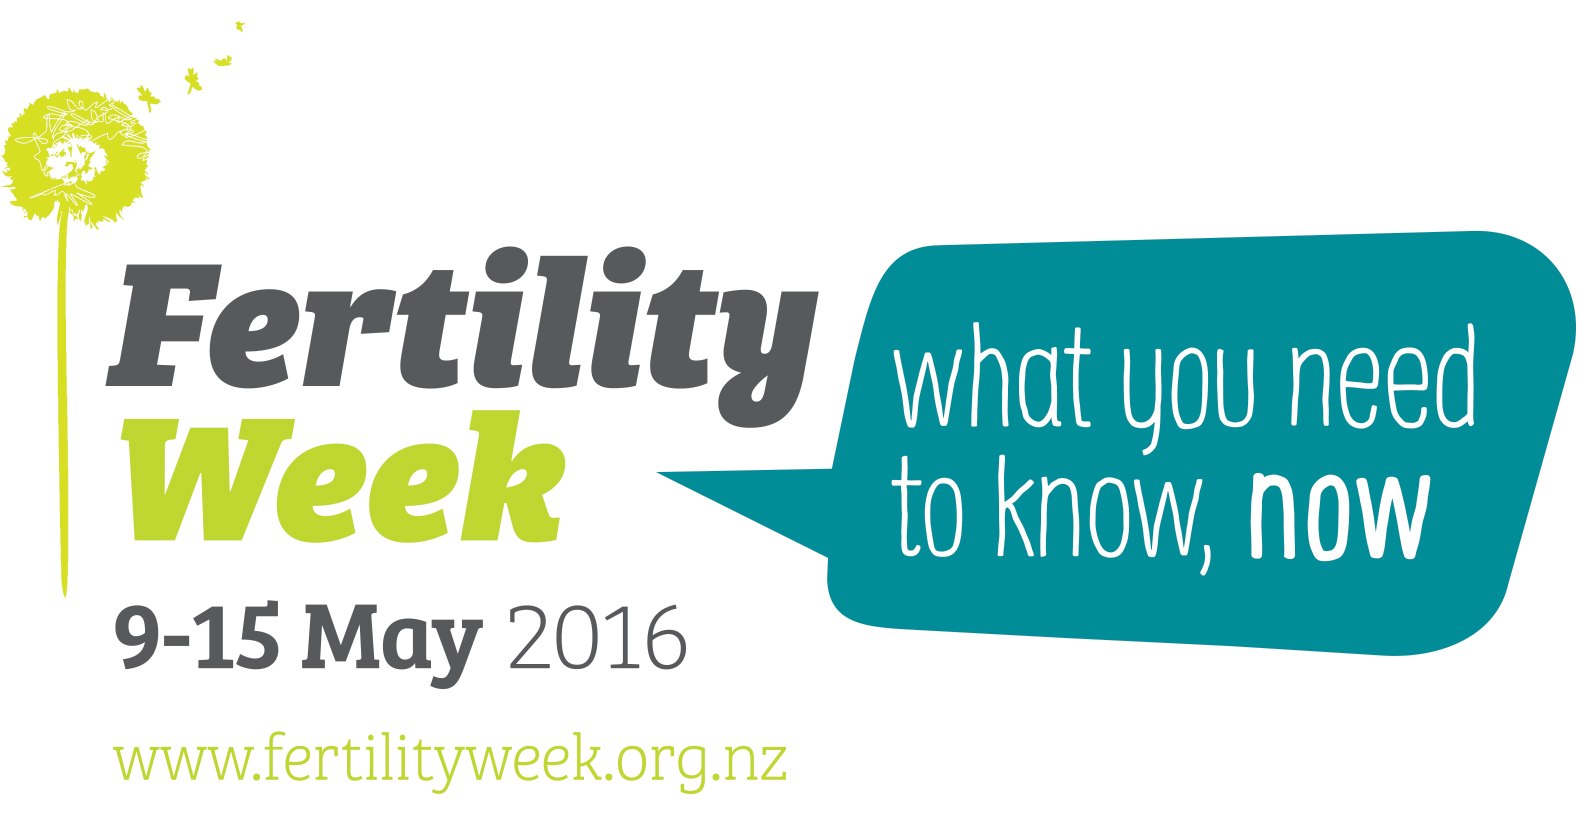 Fertility Week 2016